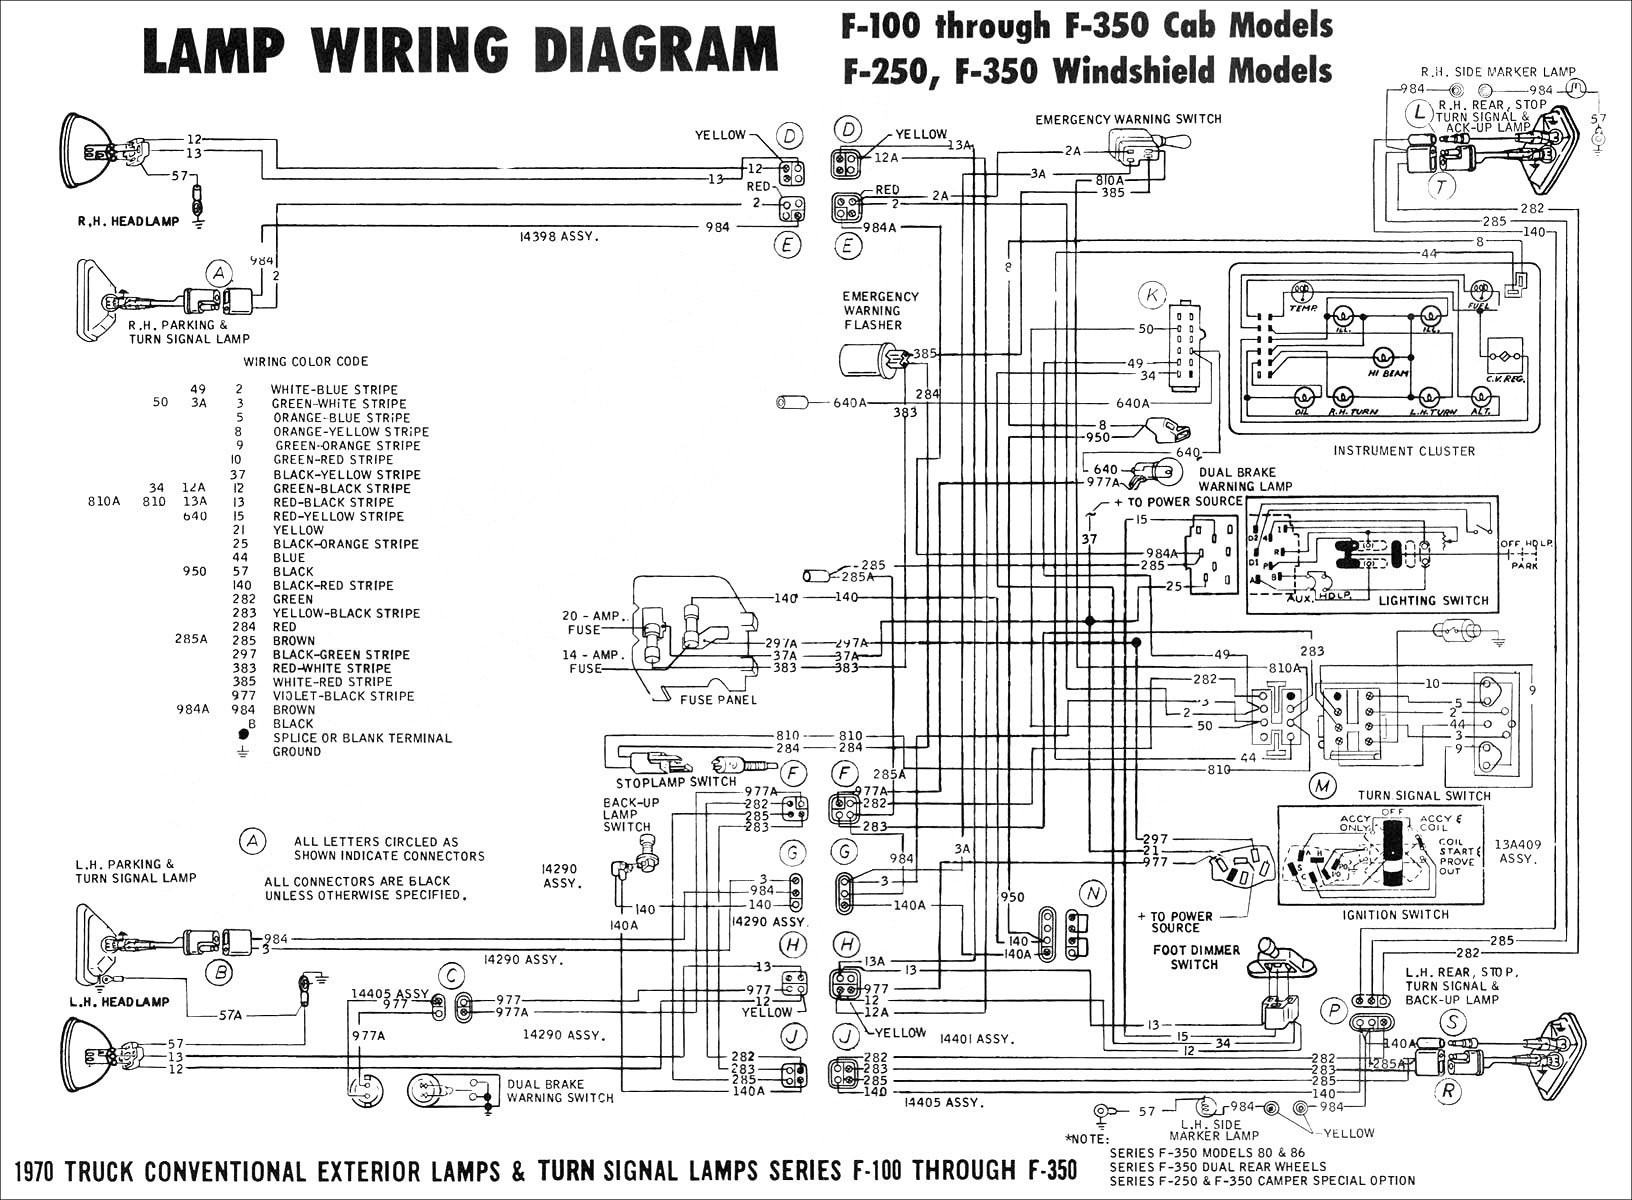 Ford Brake Master Cylinder Diagram 2008 ford F350 Wiring Diagram Inspirational F250 Daigram Throughout